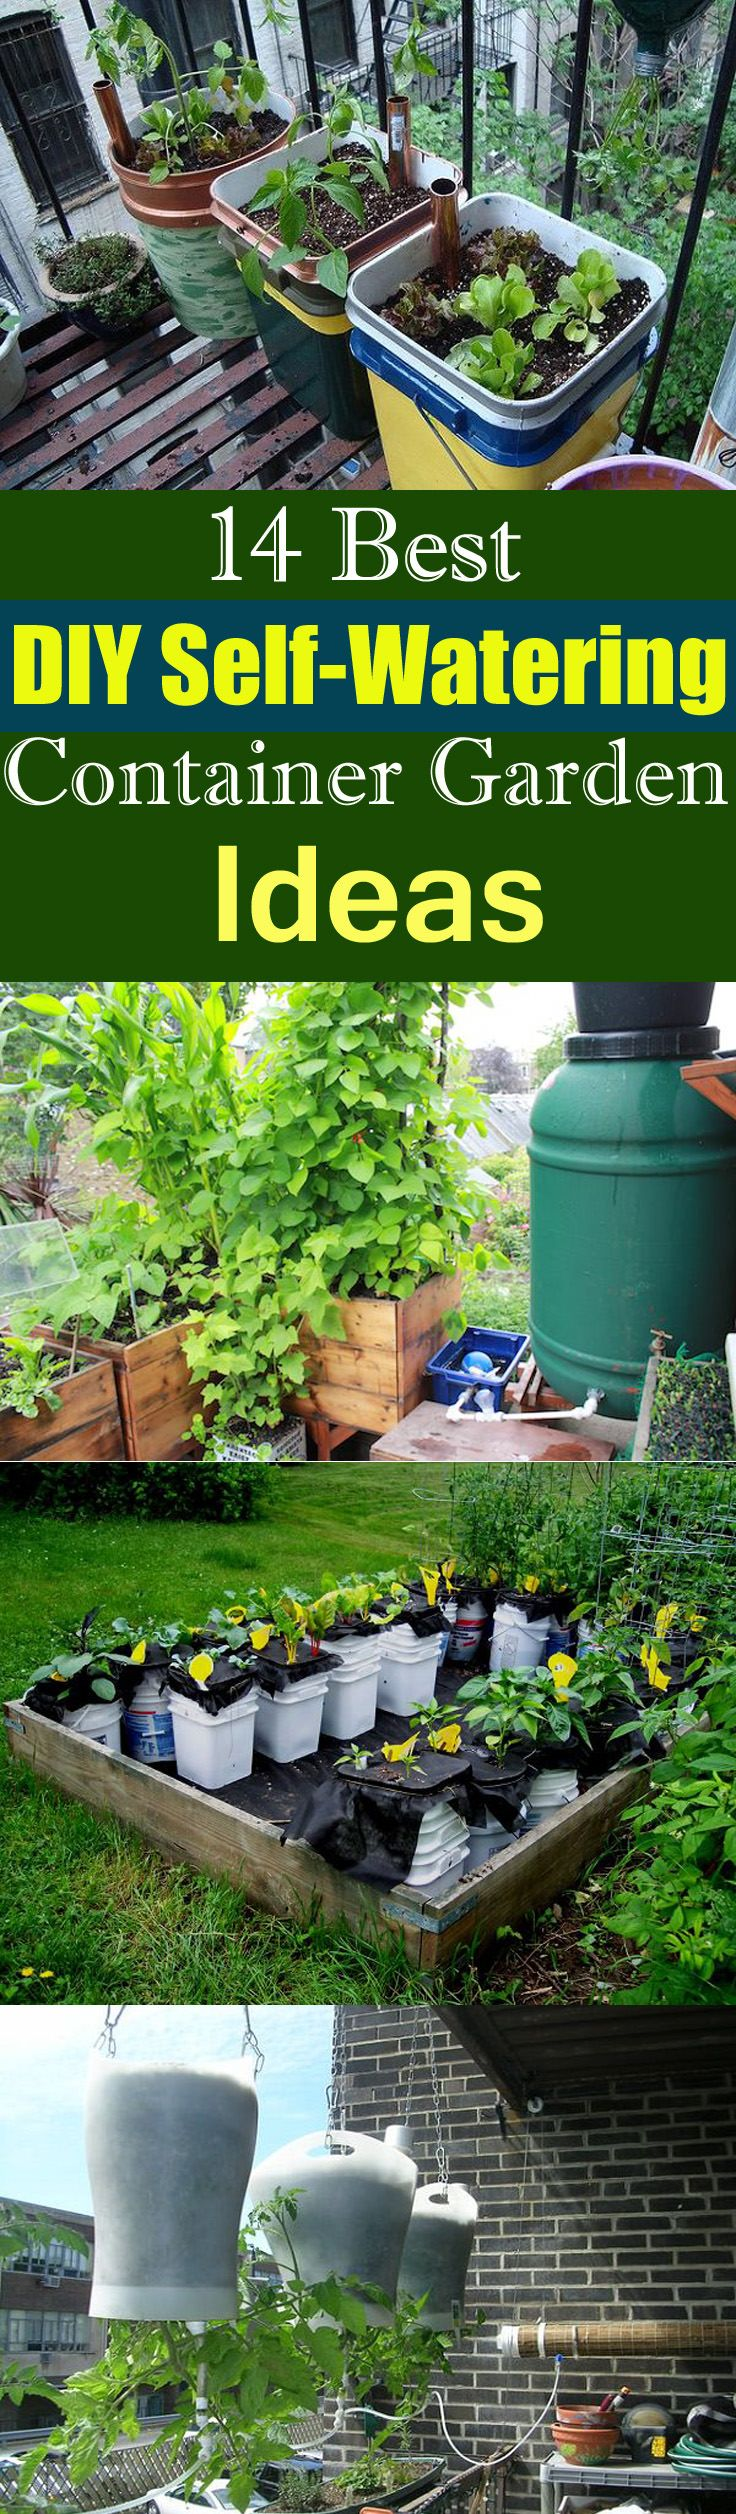 25 best ideas about self watering pots on pinterest self watering plastic water containers - Diy self watering container garden ...